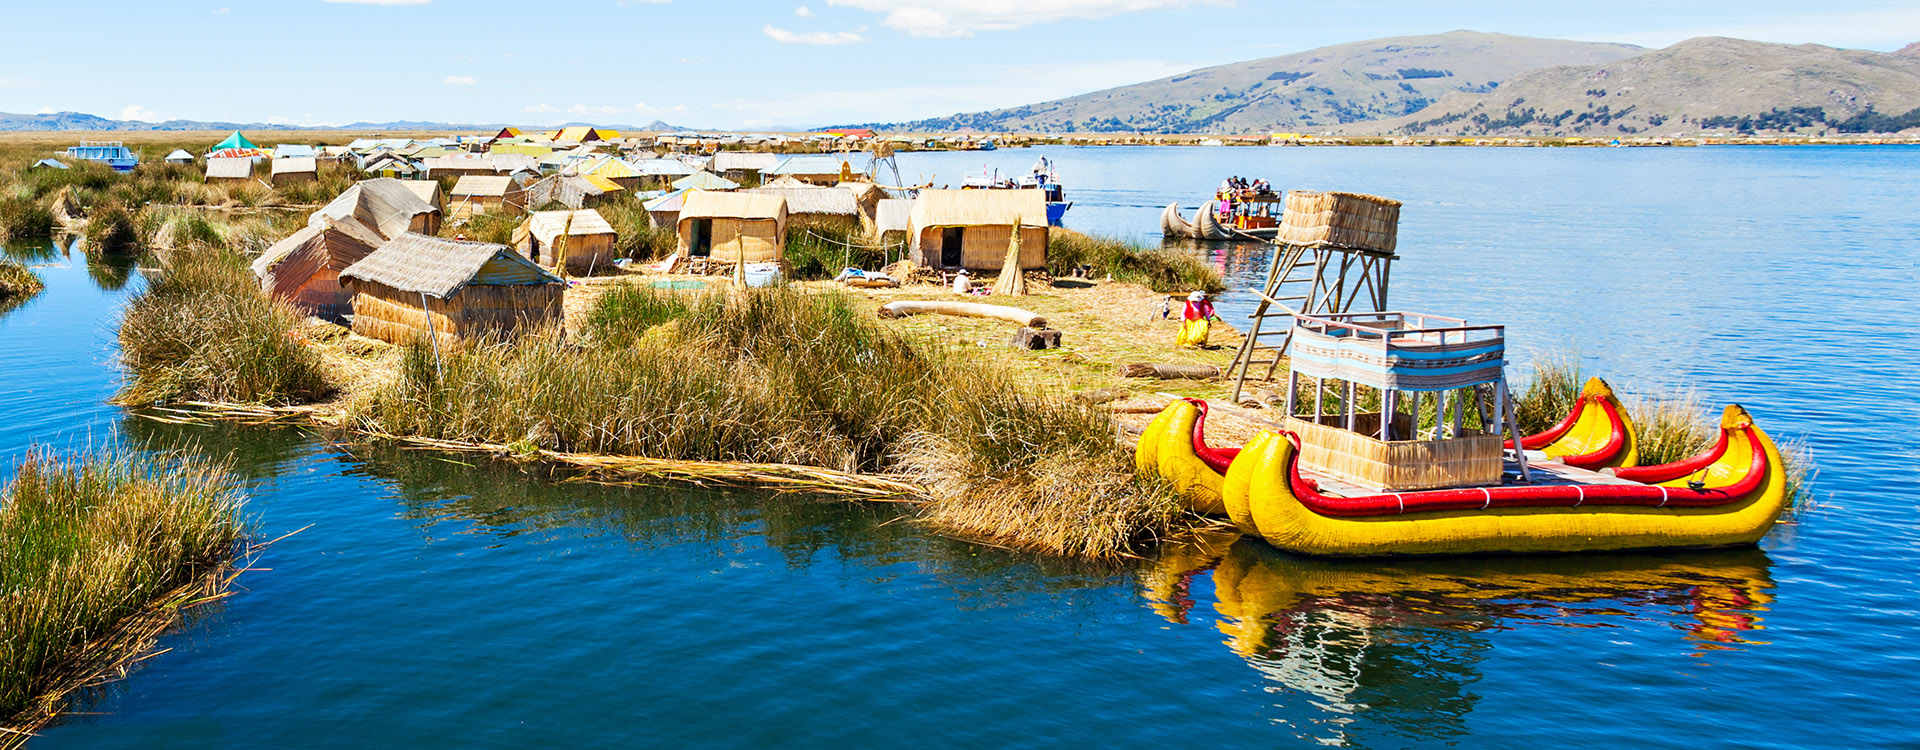 Lake Titicaca,South America, located on border of Peru and Bolivia